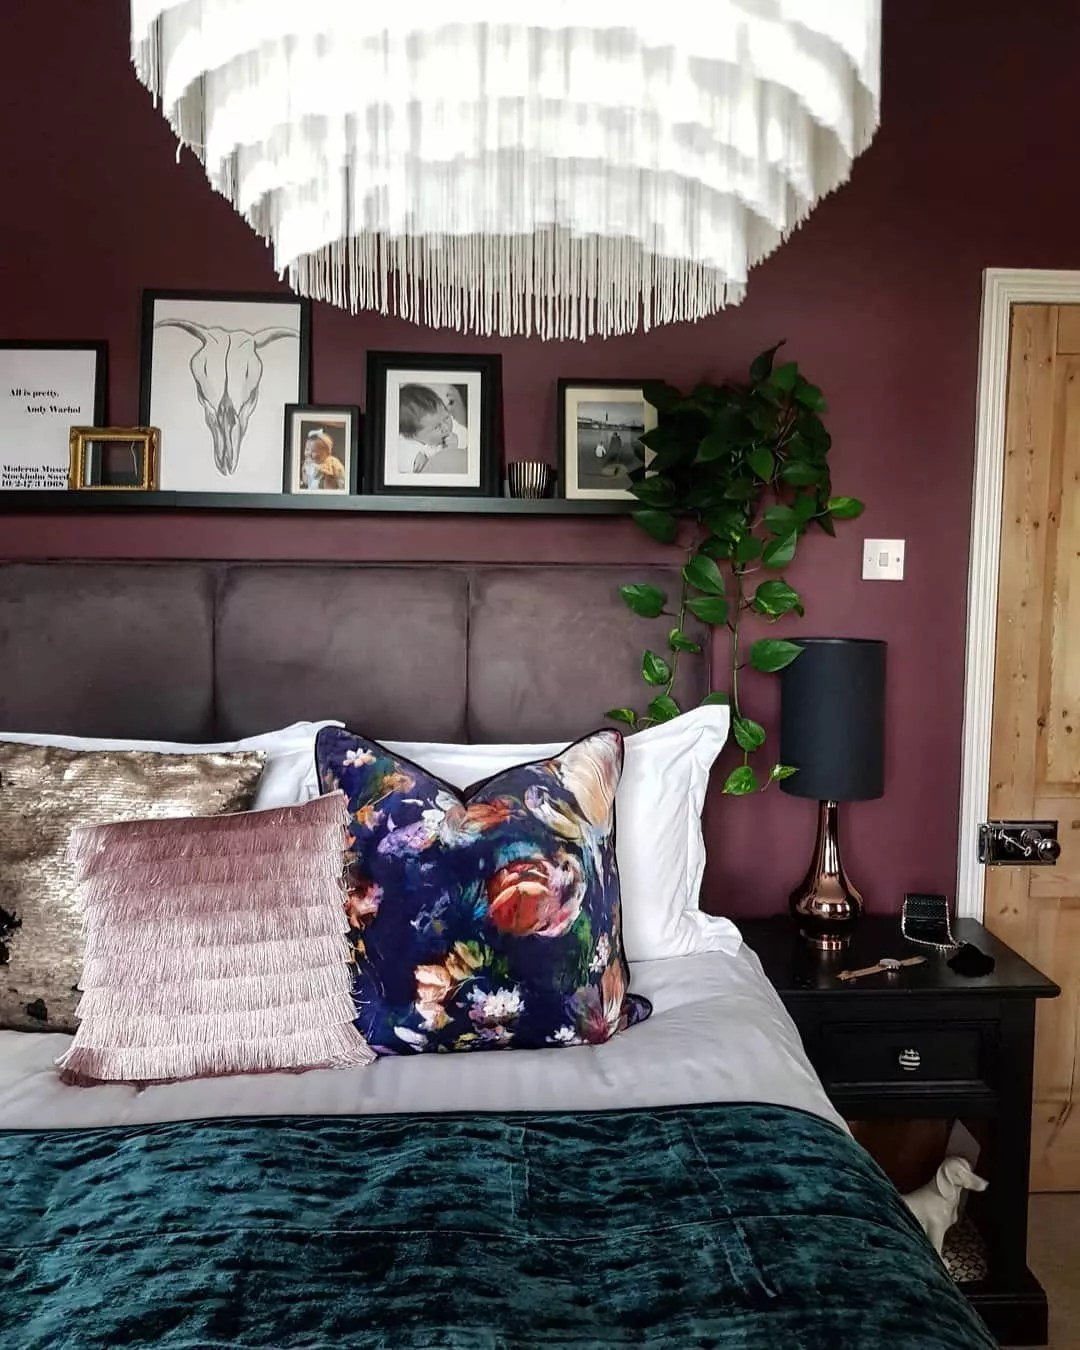 Small bedroom painted a wine red. Photo by Instagram user @bramblelaneinteriors.